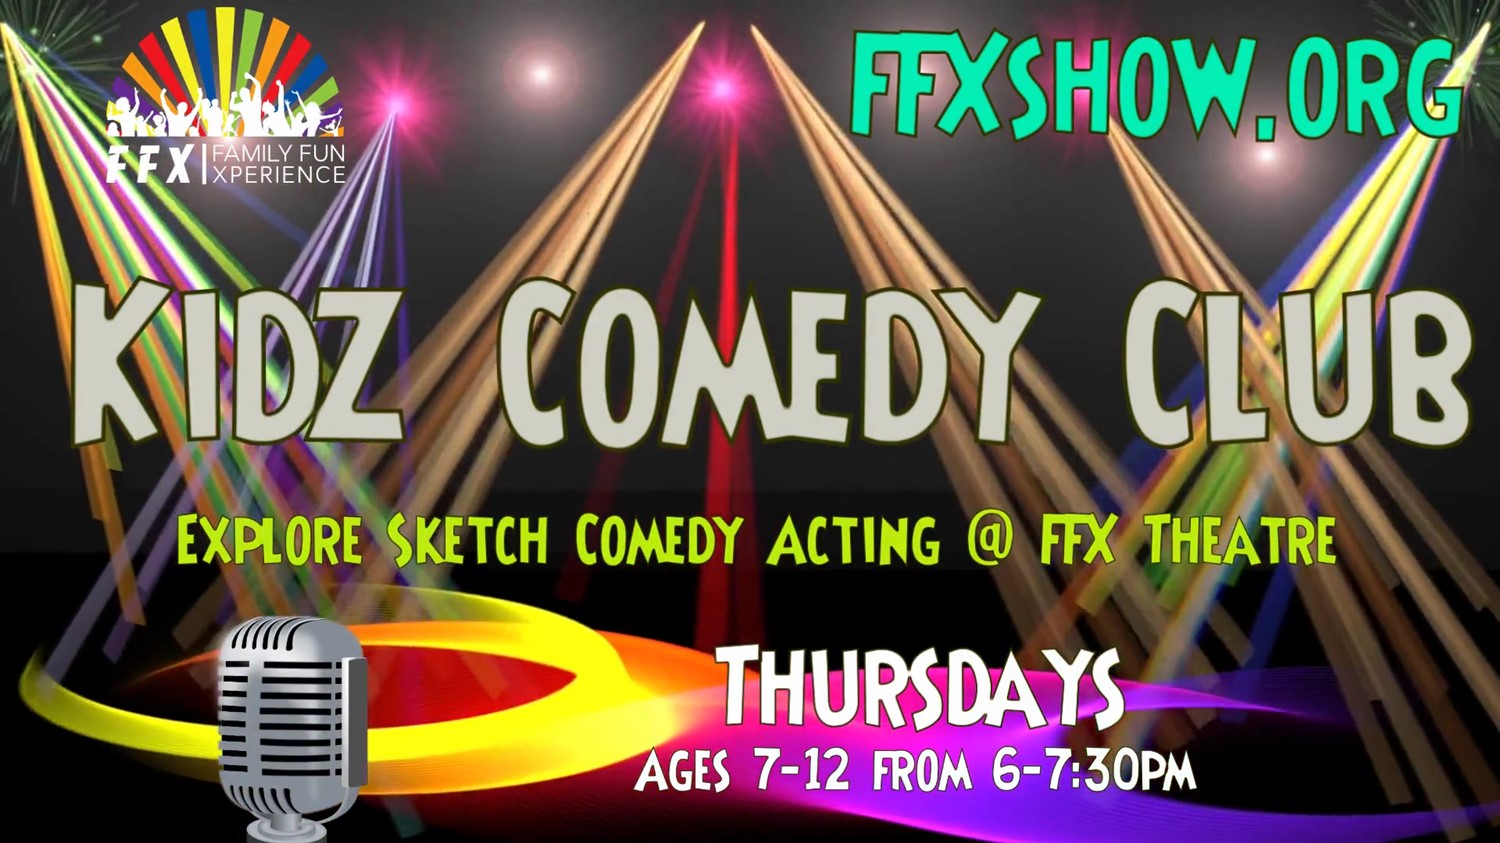 Kidz Comedy Club Ages 7-12 Join the FUN! on Dec 22, 00:00@FFX Theatre - Buy tickets and Get information on Family Fun Xperience tickets.ffxshow.org